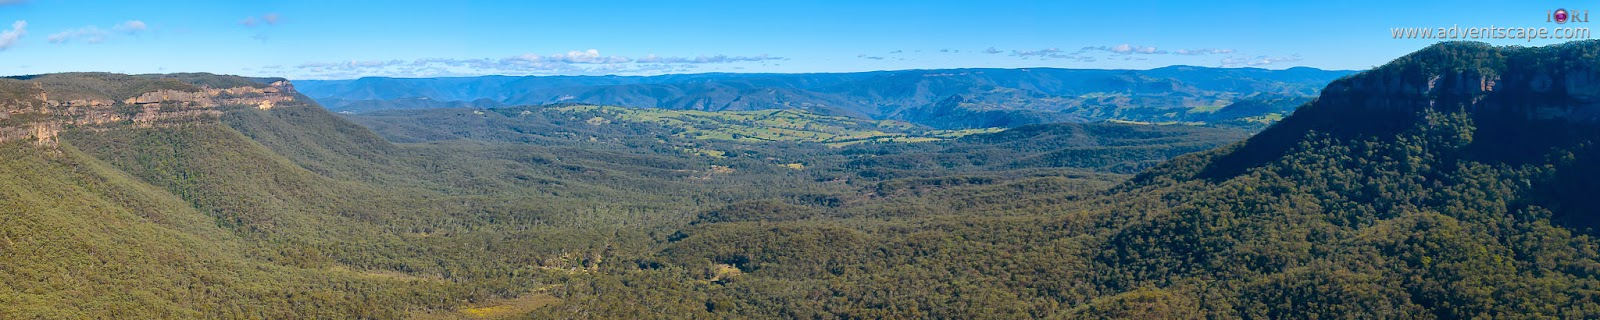 Philip Avellana, Australian Landscape Photographer, Katoomba, NSW, New South Wales, Australia, Blue Mountains, Boar's Head, lookout, Cahills lookout, vantage point, Cliff Drive, entrance, Megalong Valley, Narrow Neck, Jamison Valley